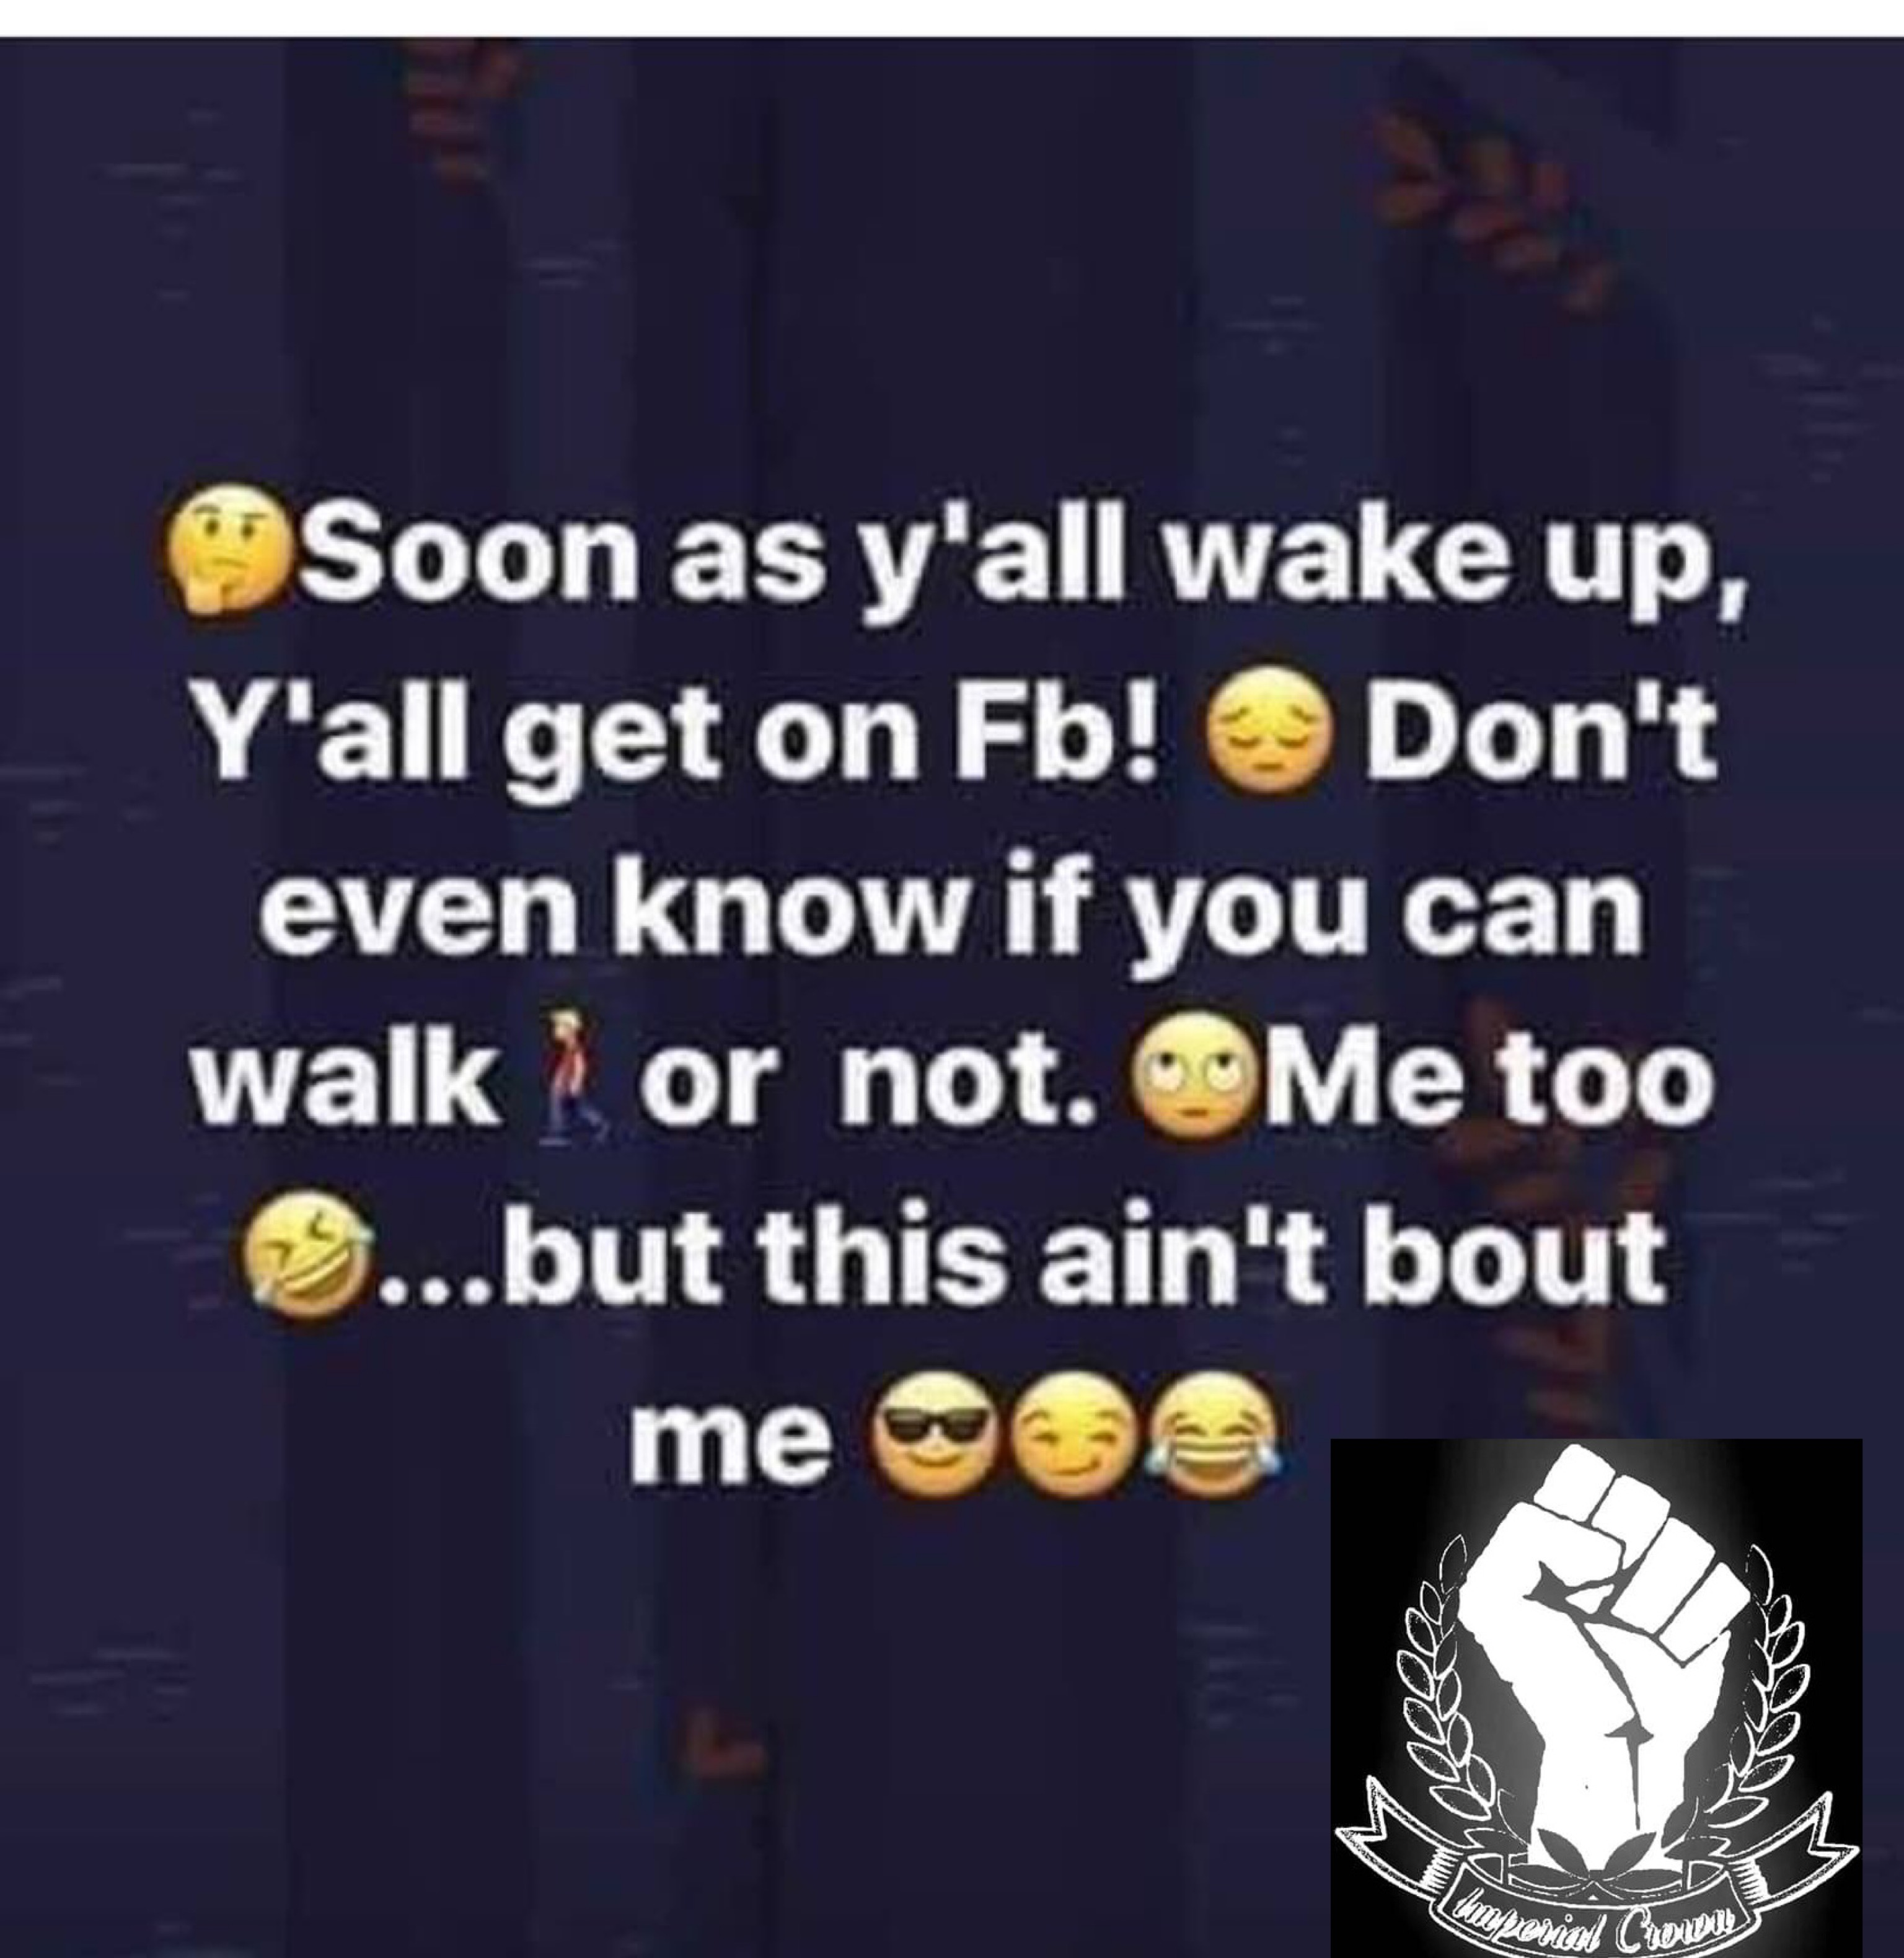 Soon as y'all wake up y'all get on fb! Don't even know if you can walk